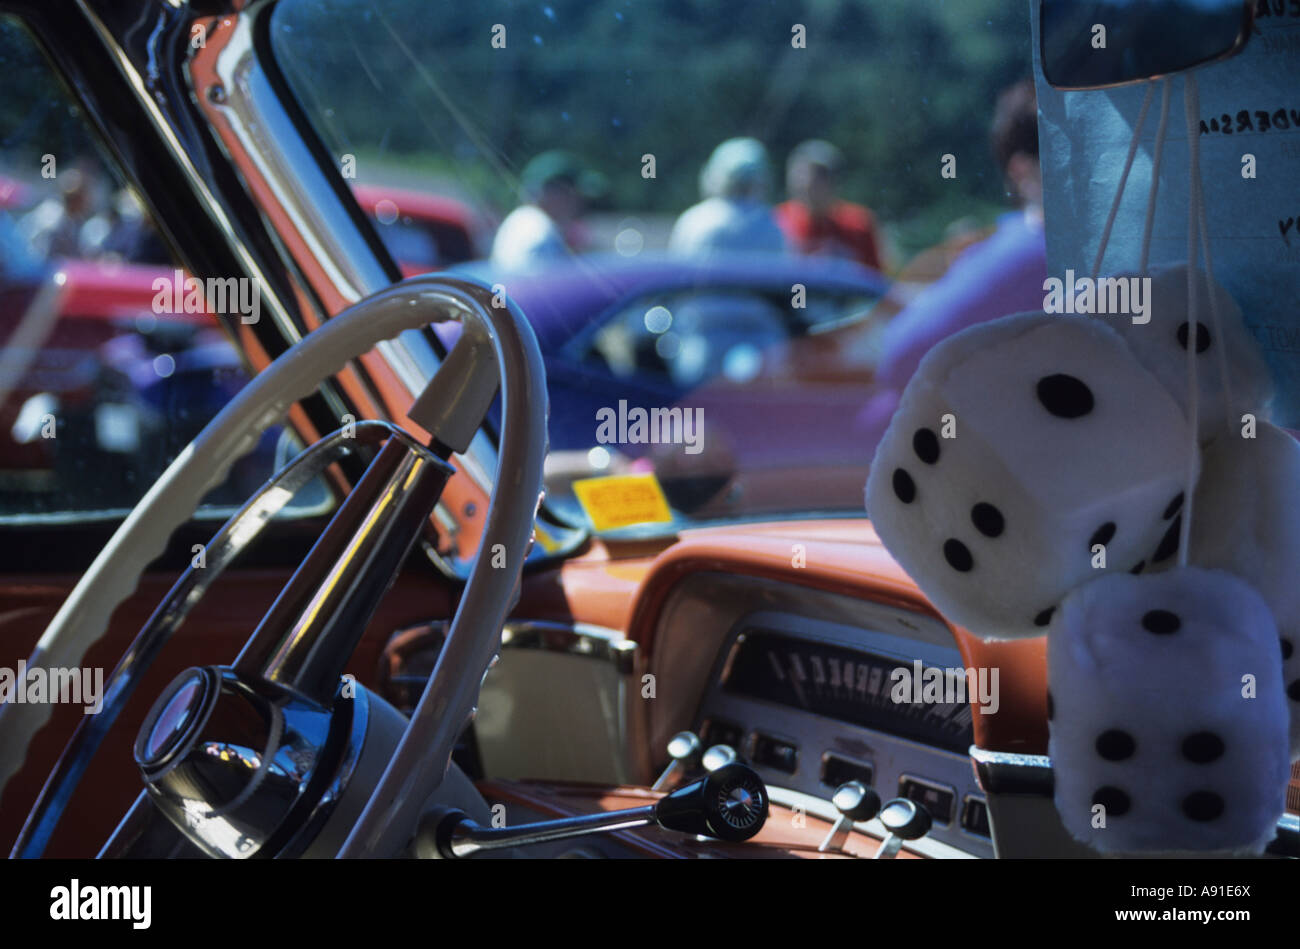 Fluffy dice in vintage car - Stock Image